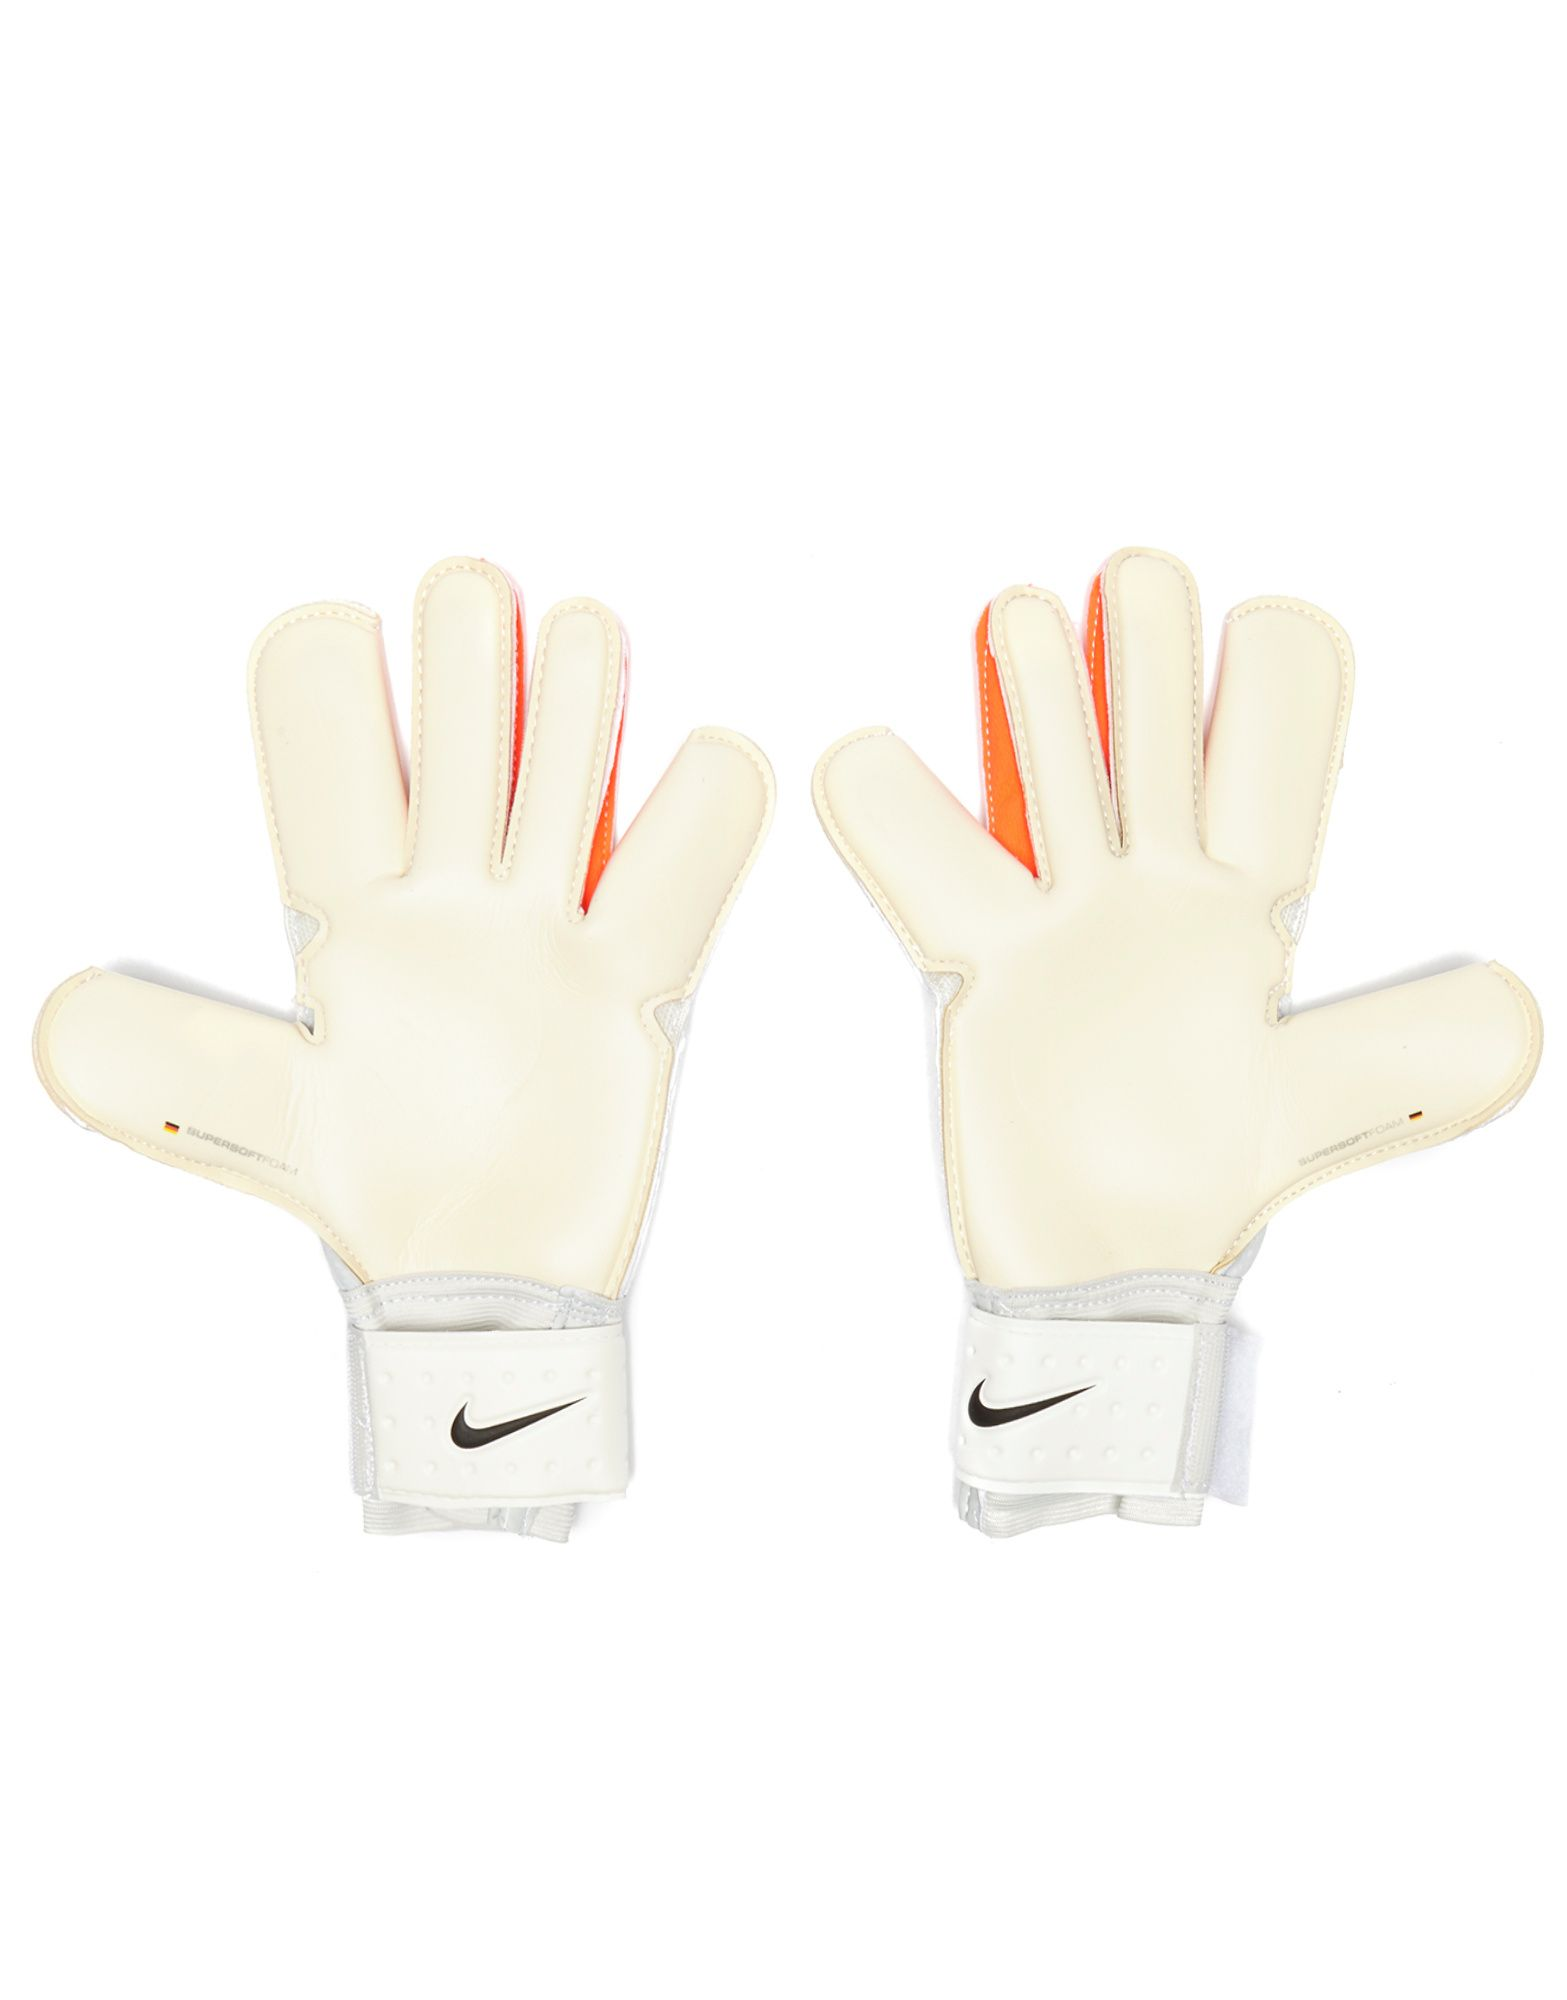 Nike Grip 3 Goal Keeping Gloves